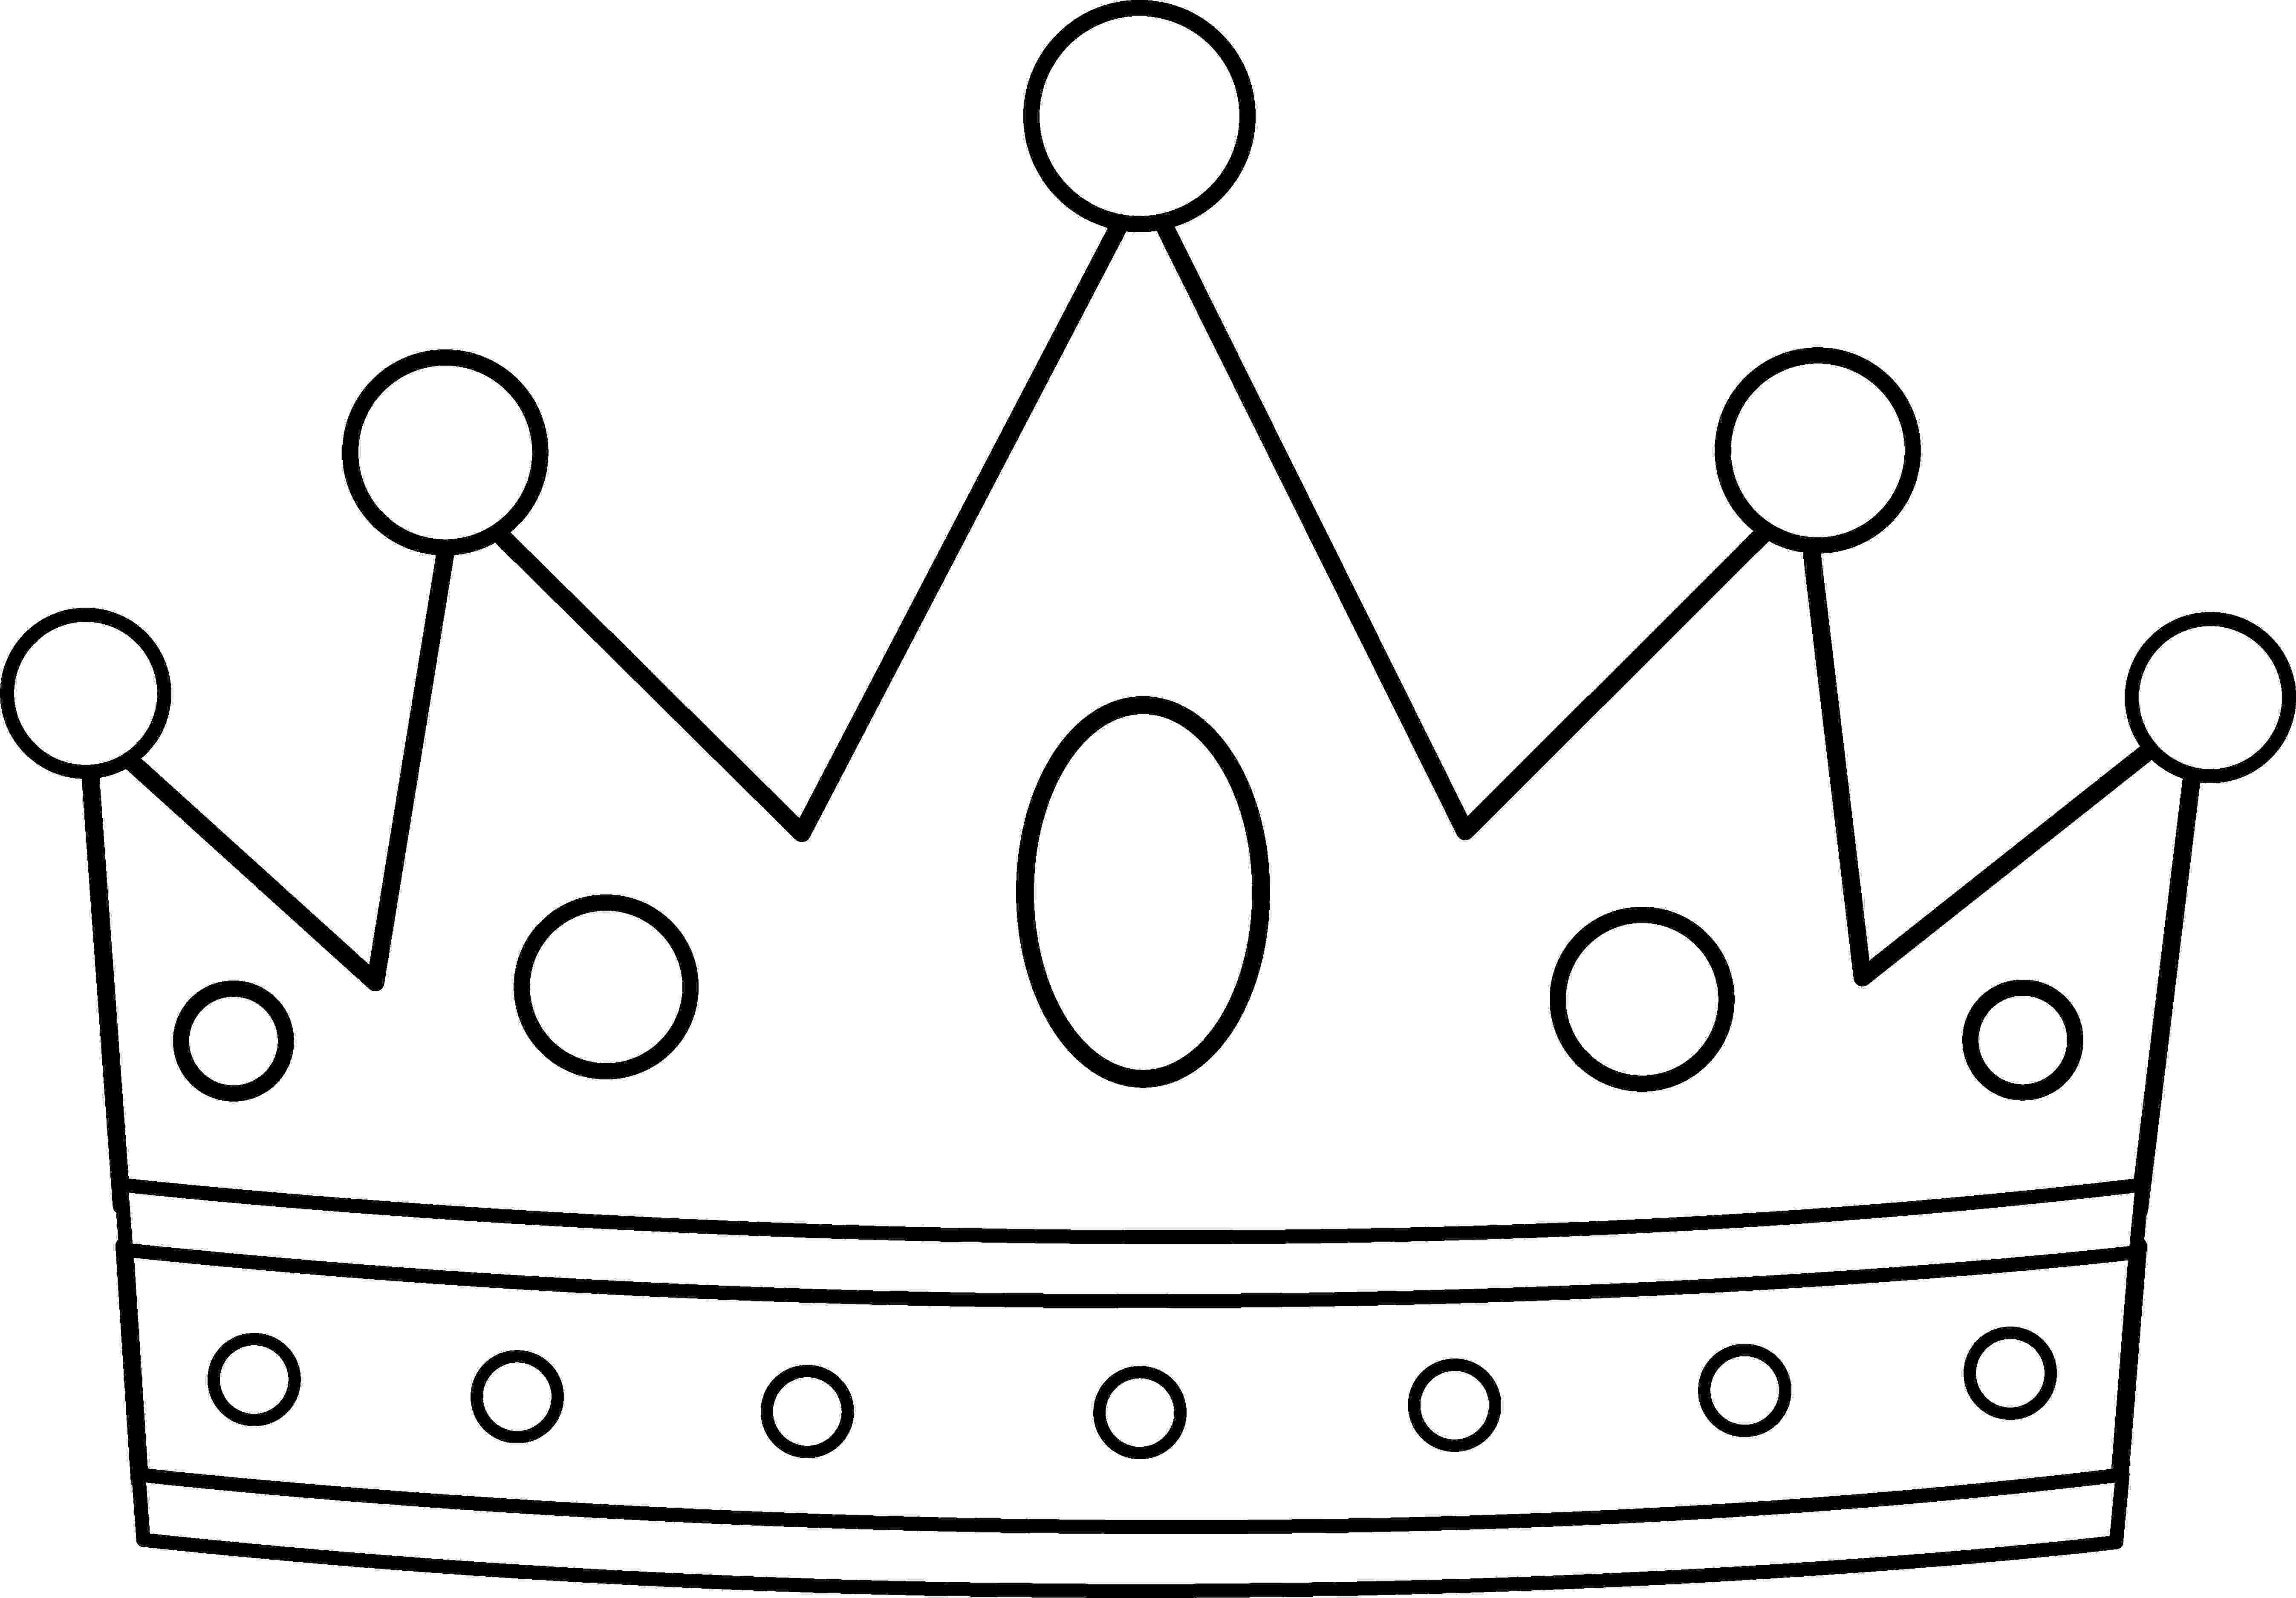 crown coloring page princess crown coloring page with images princess crown coloring page